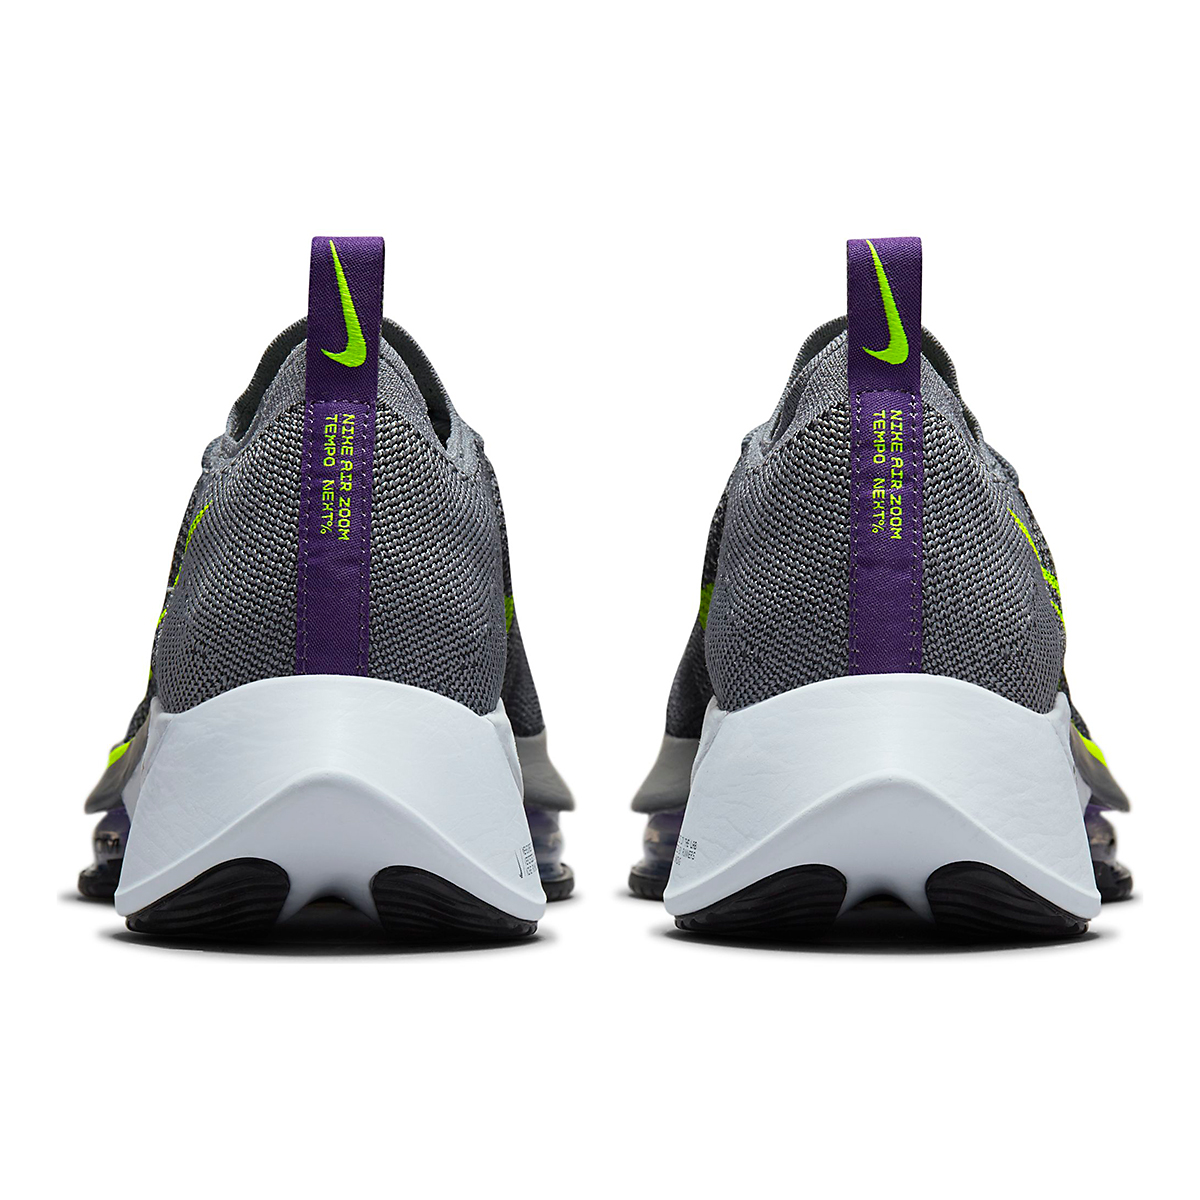 Men's Nike Air Zoom Tempo Next% Running Shoe - Color: Perticle Grey/Volt Grey/Wild Berry - Size: 10 - Width: Regular, Perticle Grey/Volt Grey/Wild Berry, large, image 6